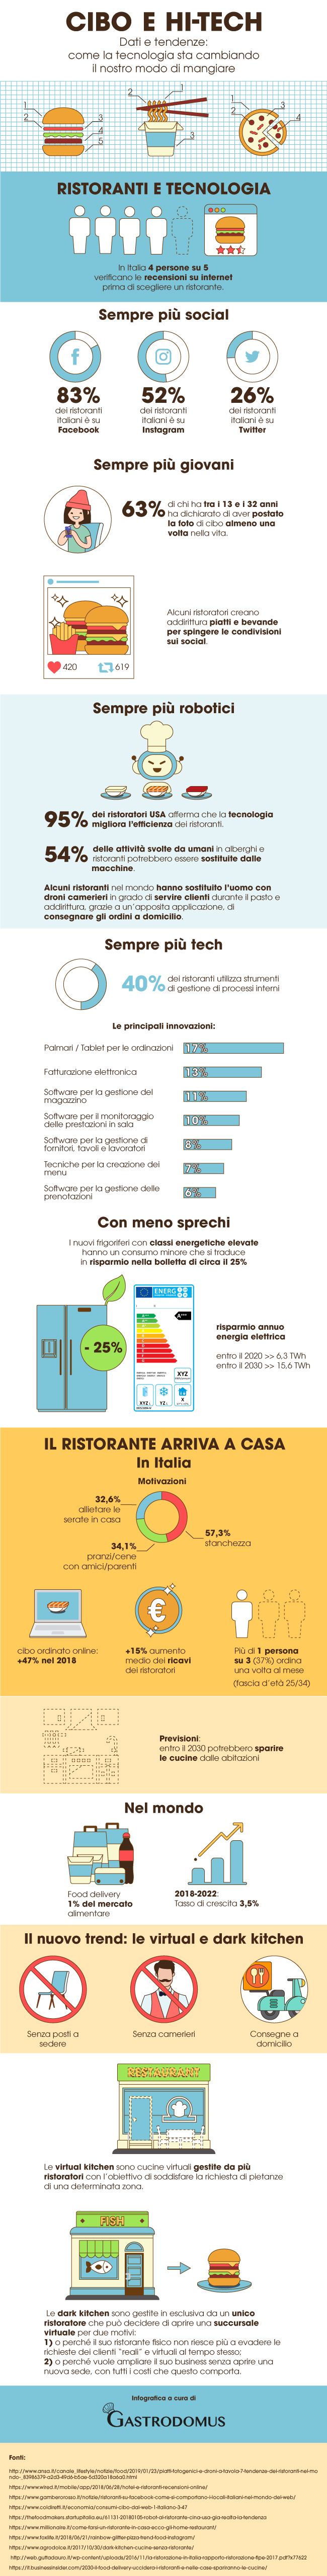 cibo high-tech, infografica